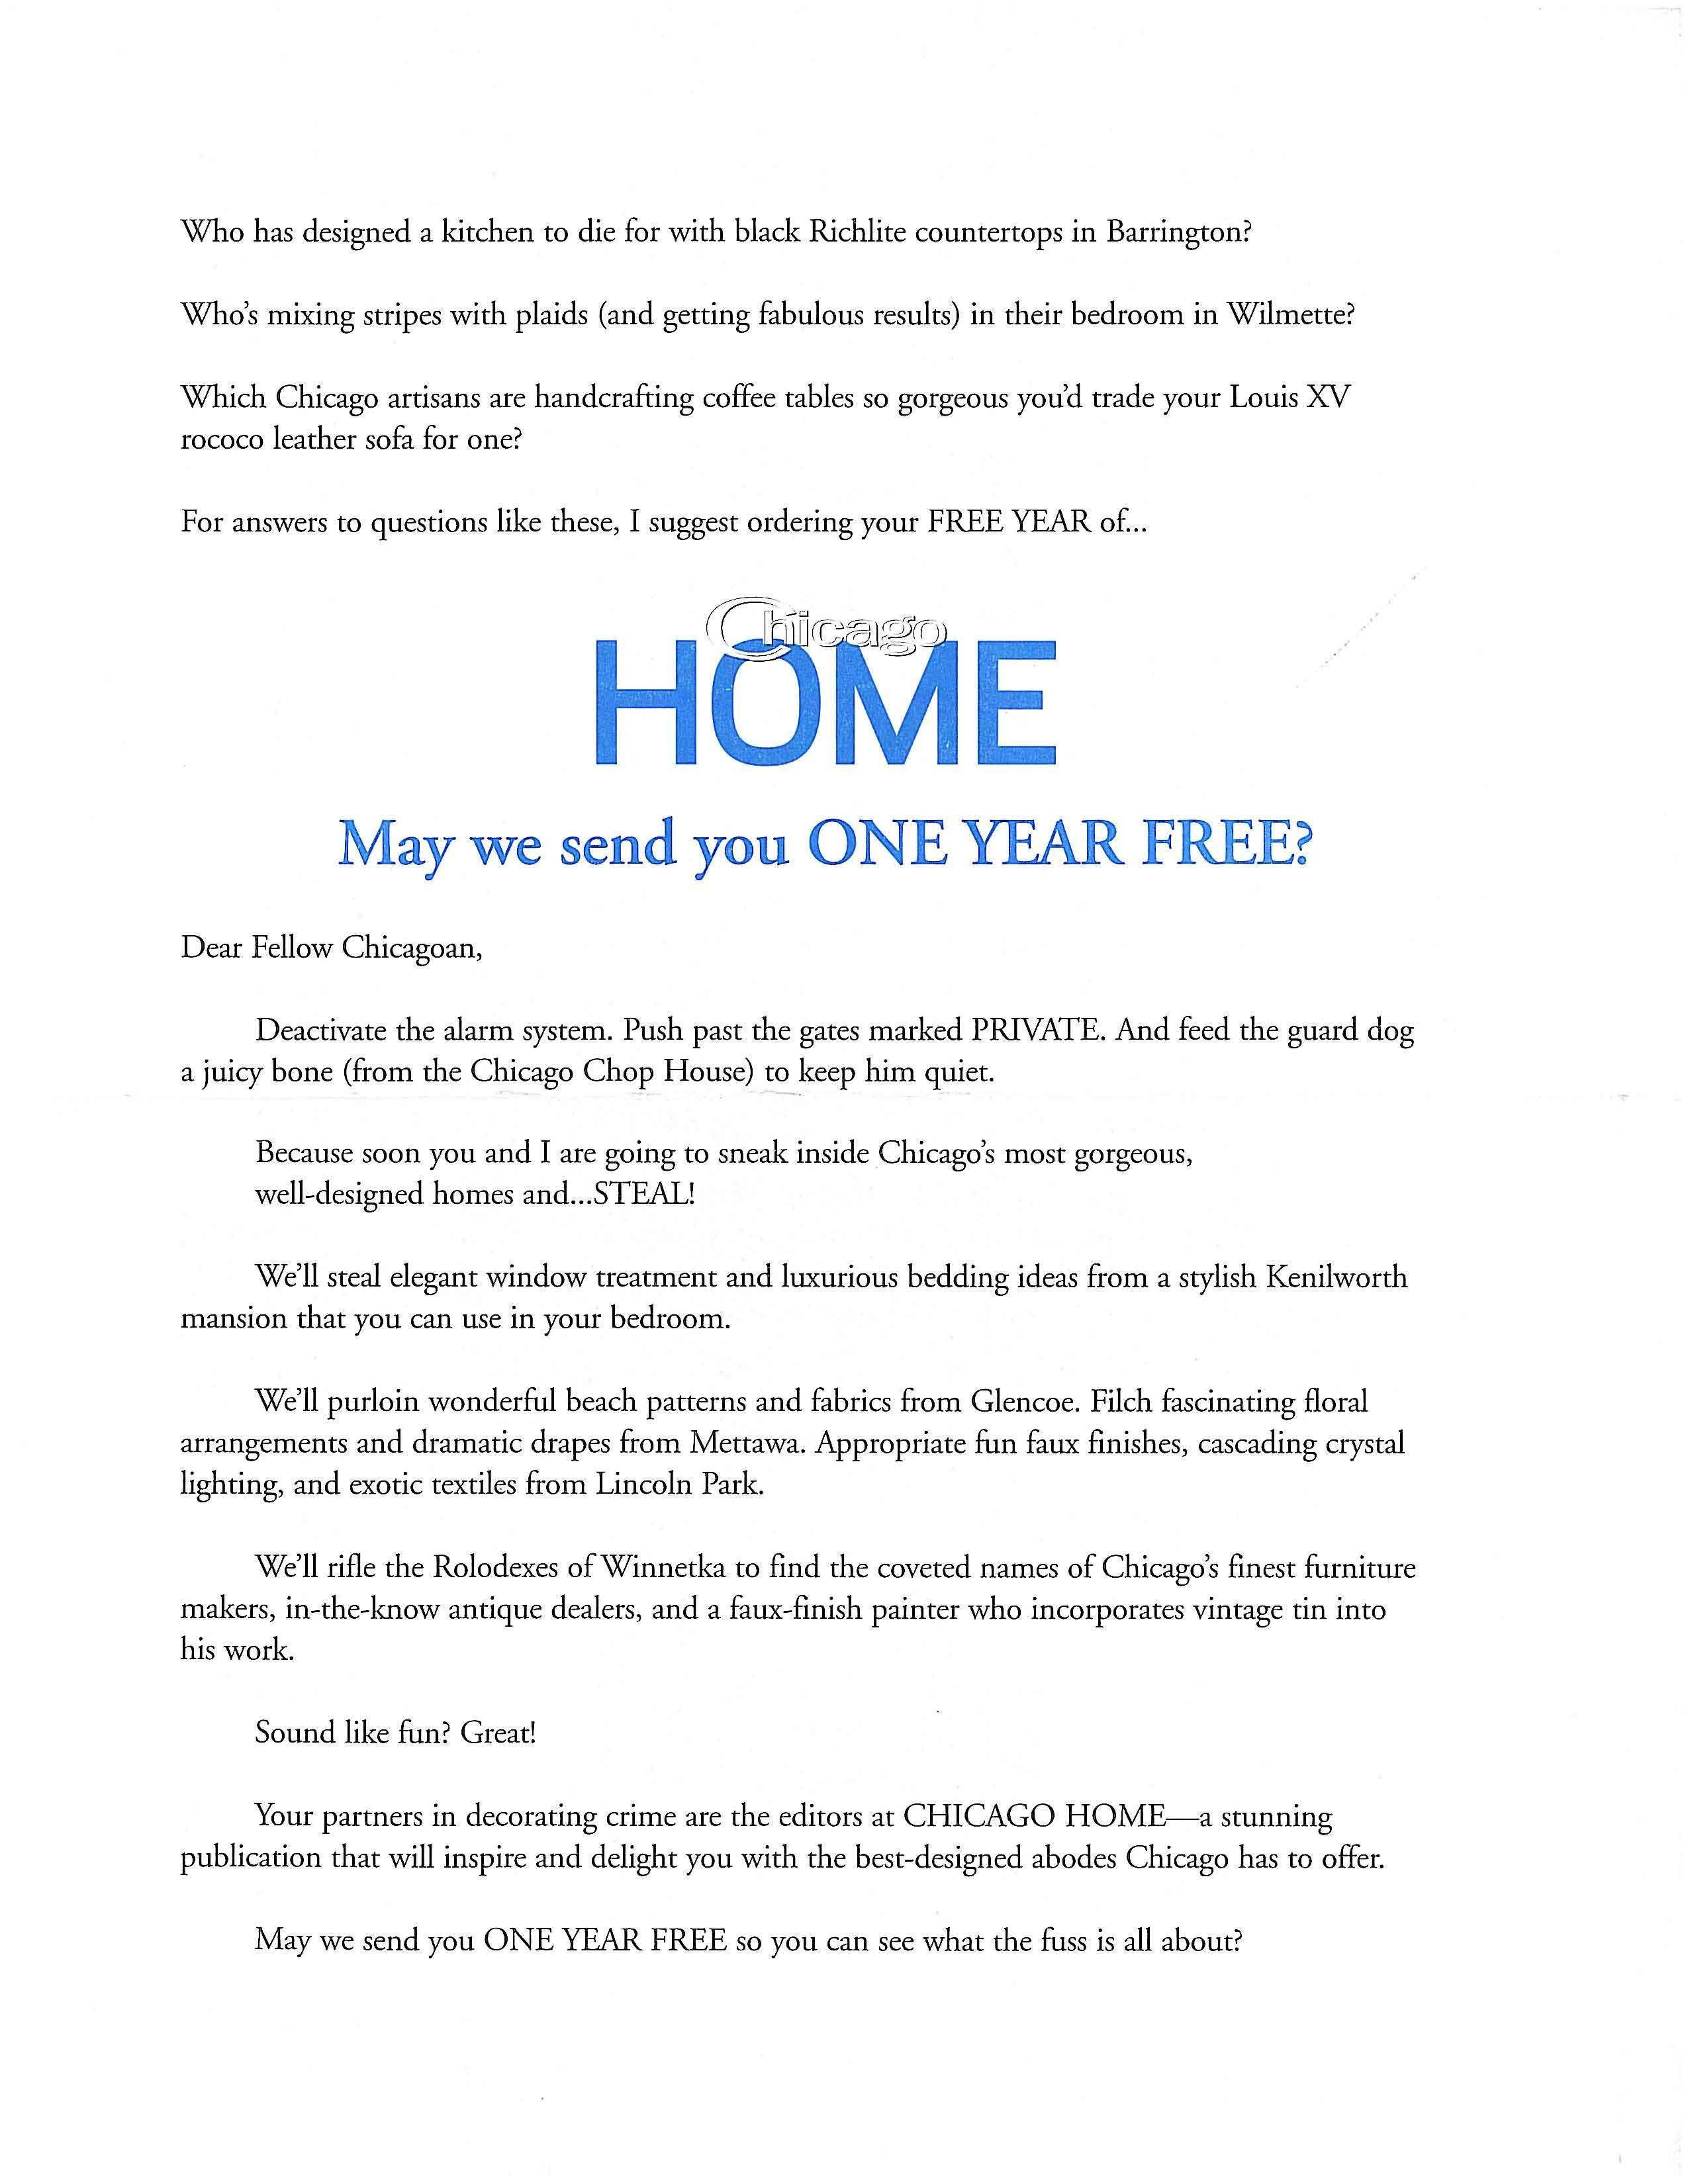 My Direct Mail Sales Letter For Chicago Home Magazine Became A